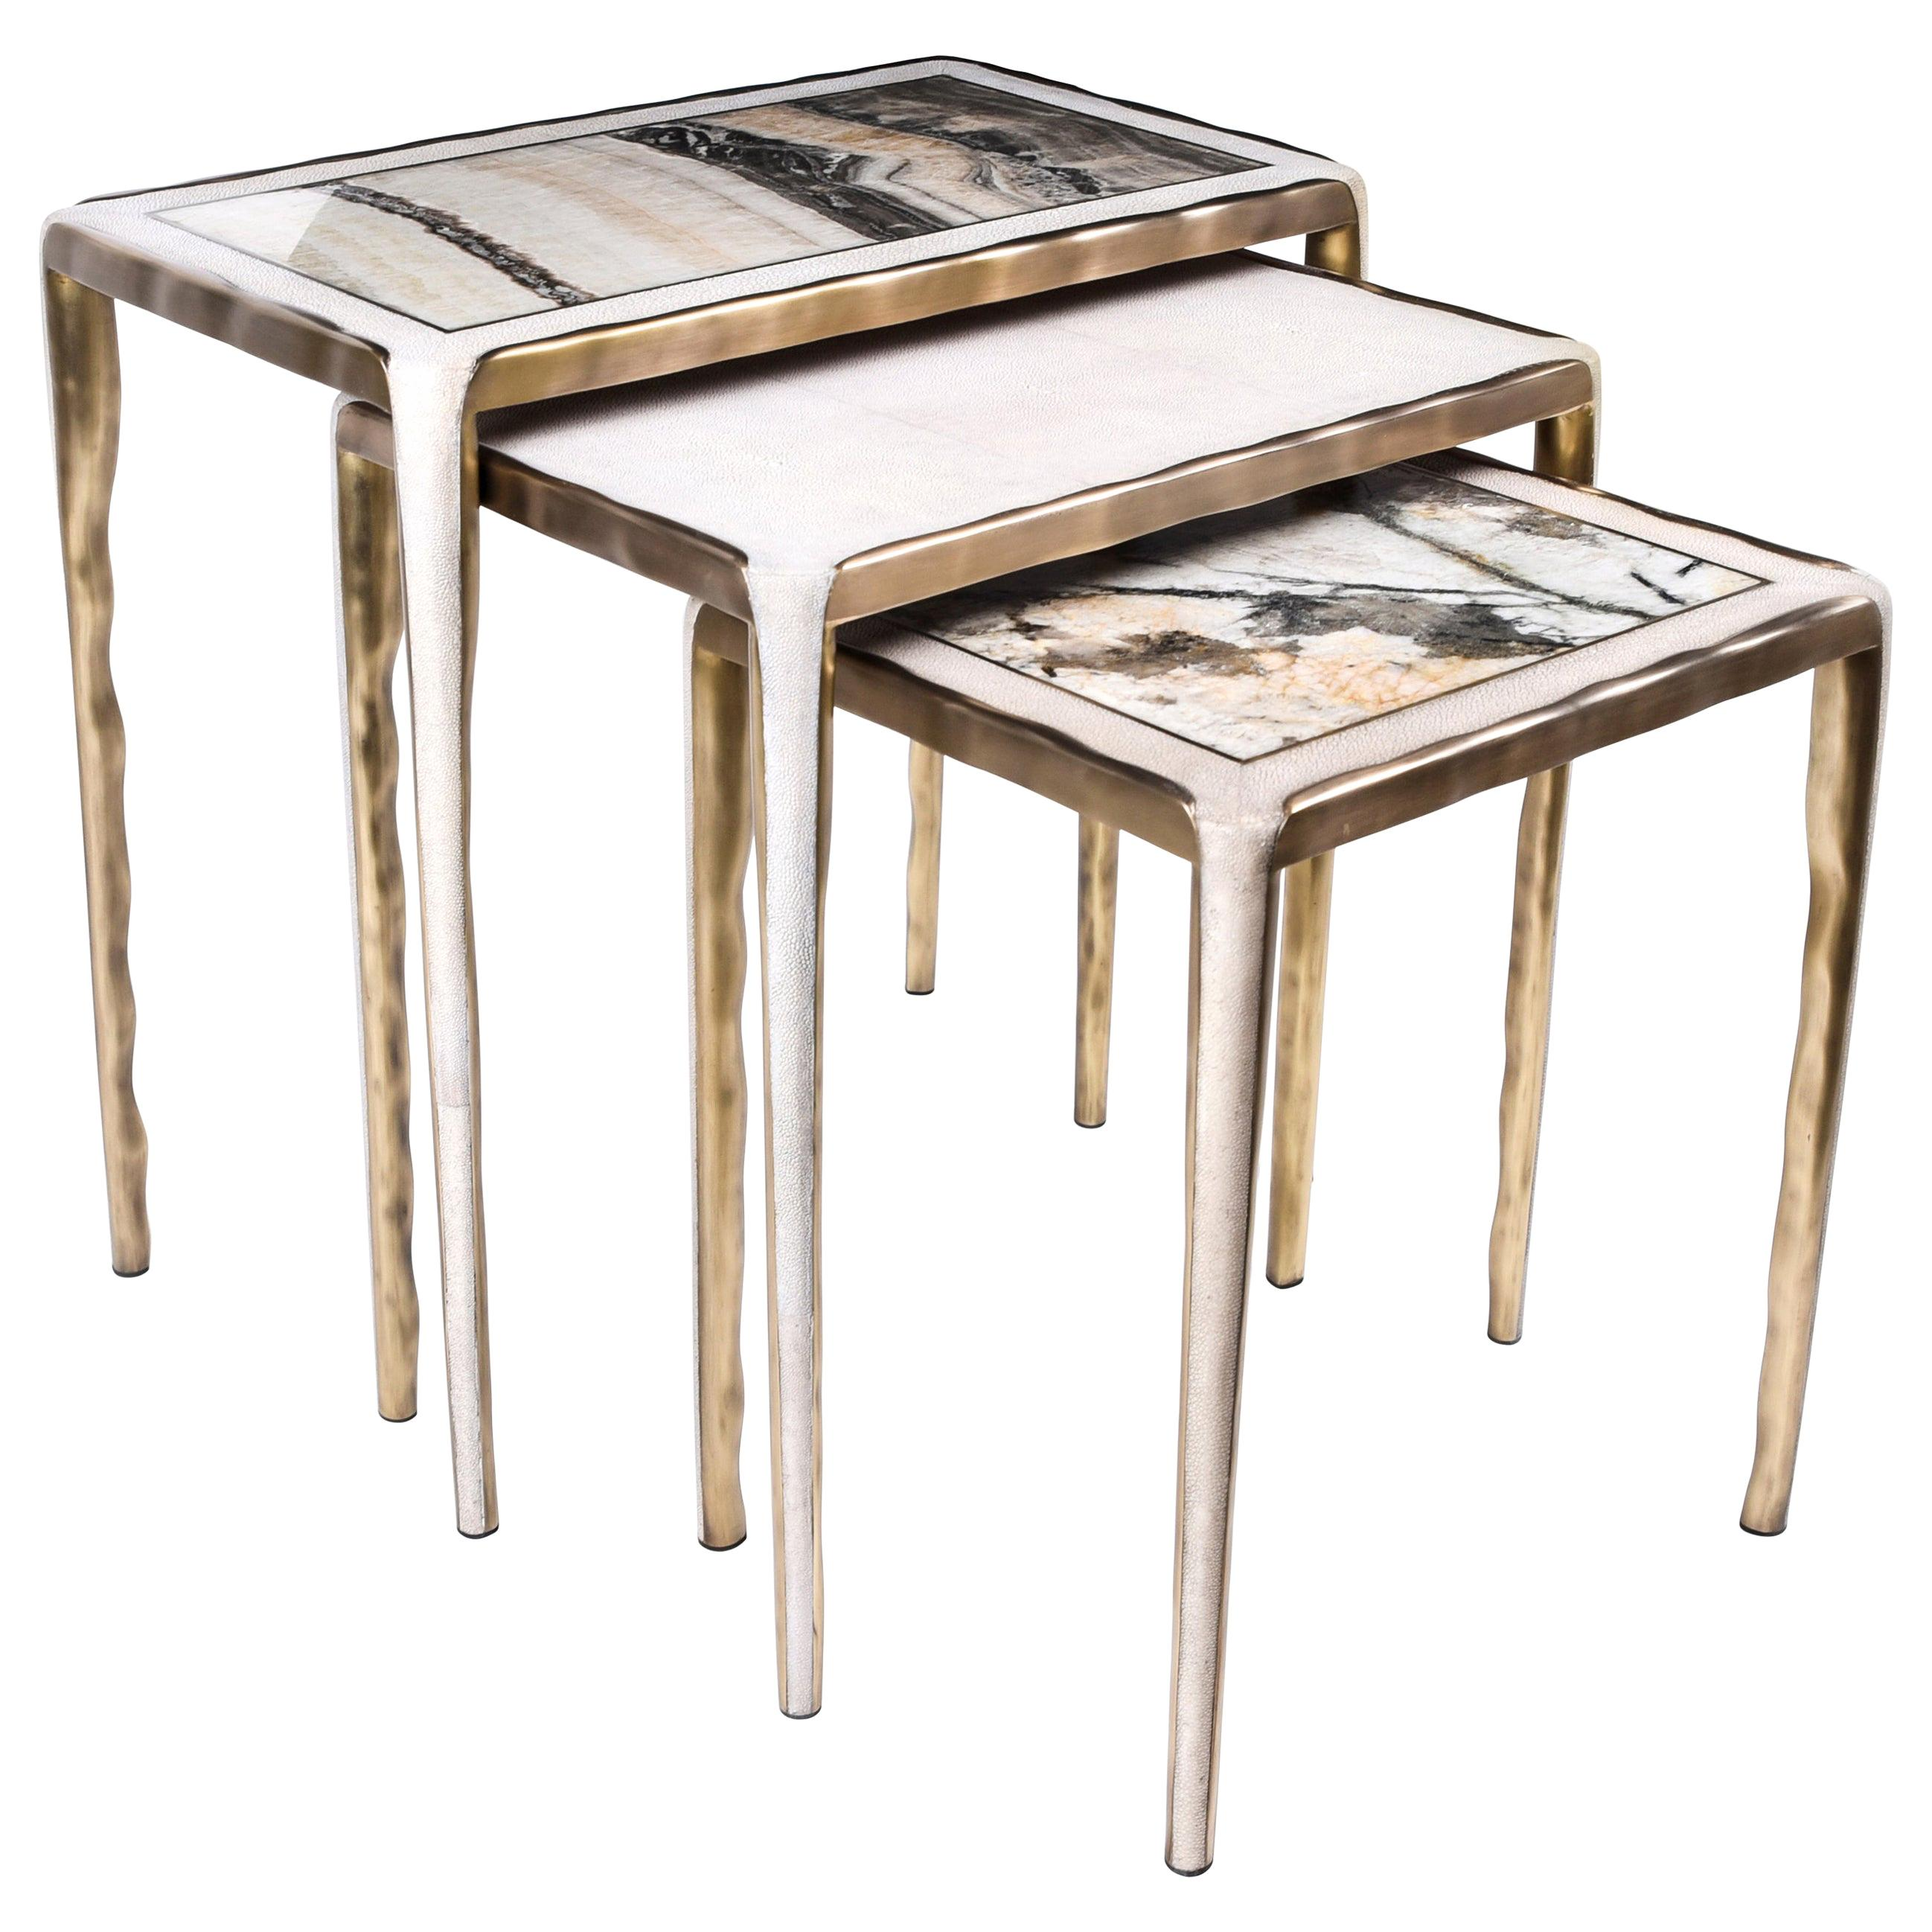 Melting Nesting Side Table Set of 3 in Shagreen, Onyx and Brass by R&Y Augousti